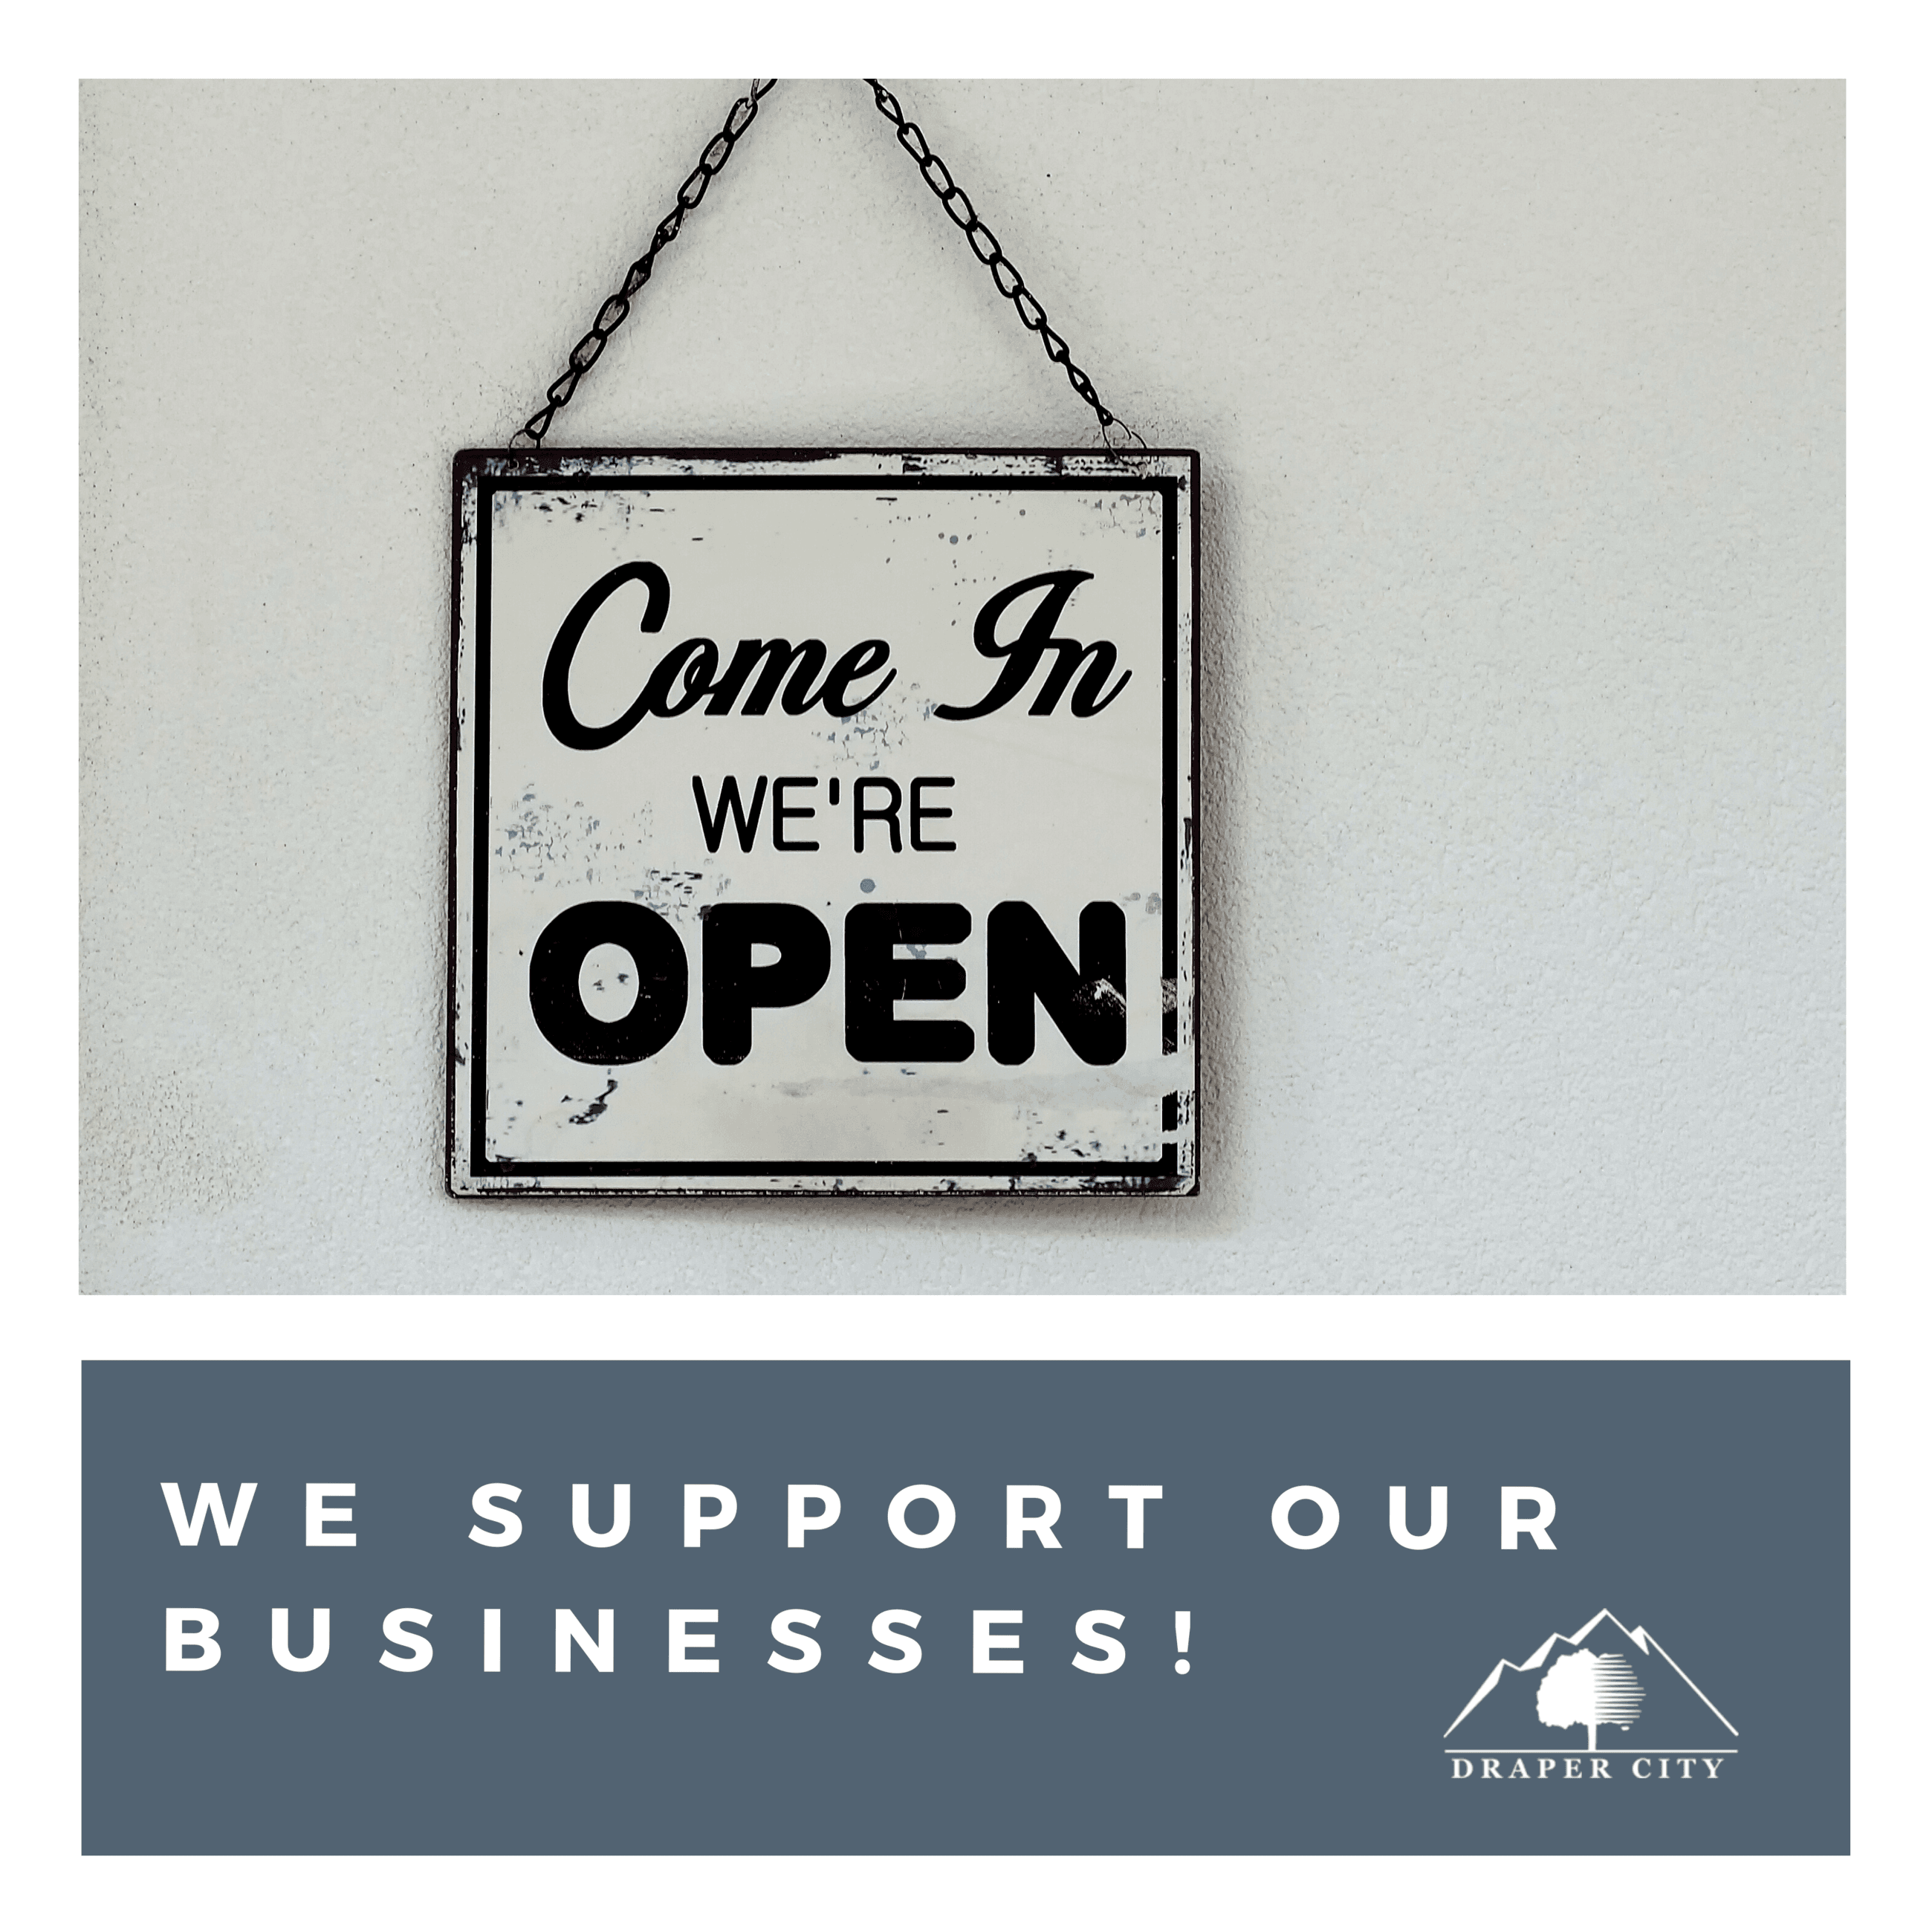 We support our businesses